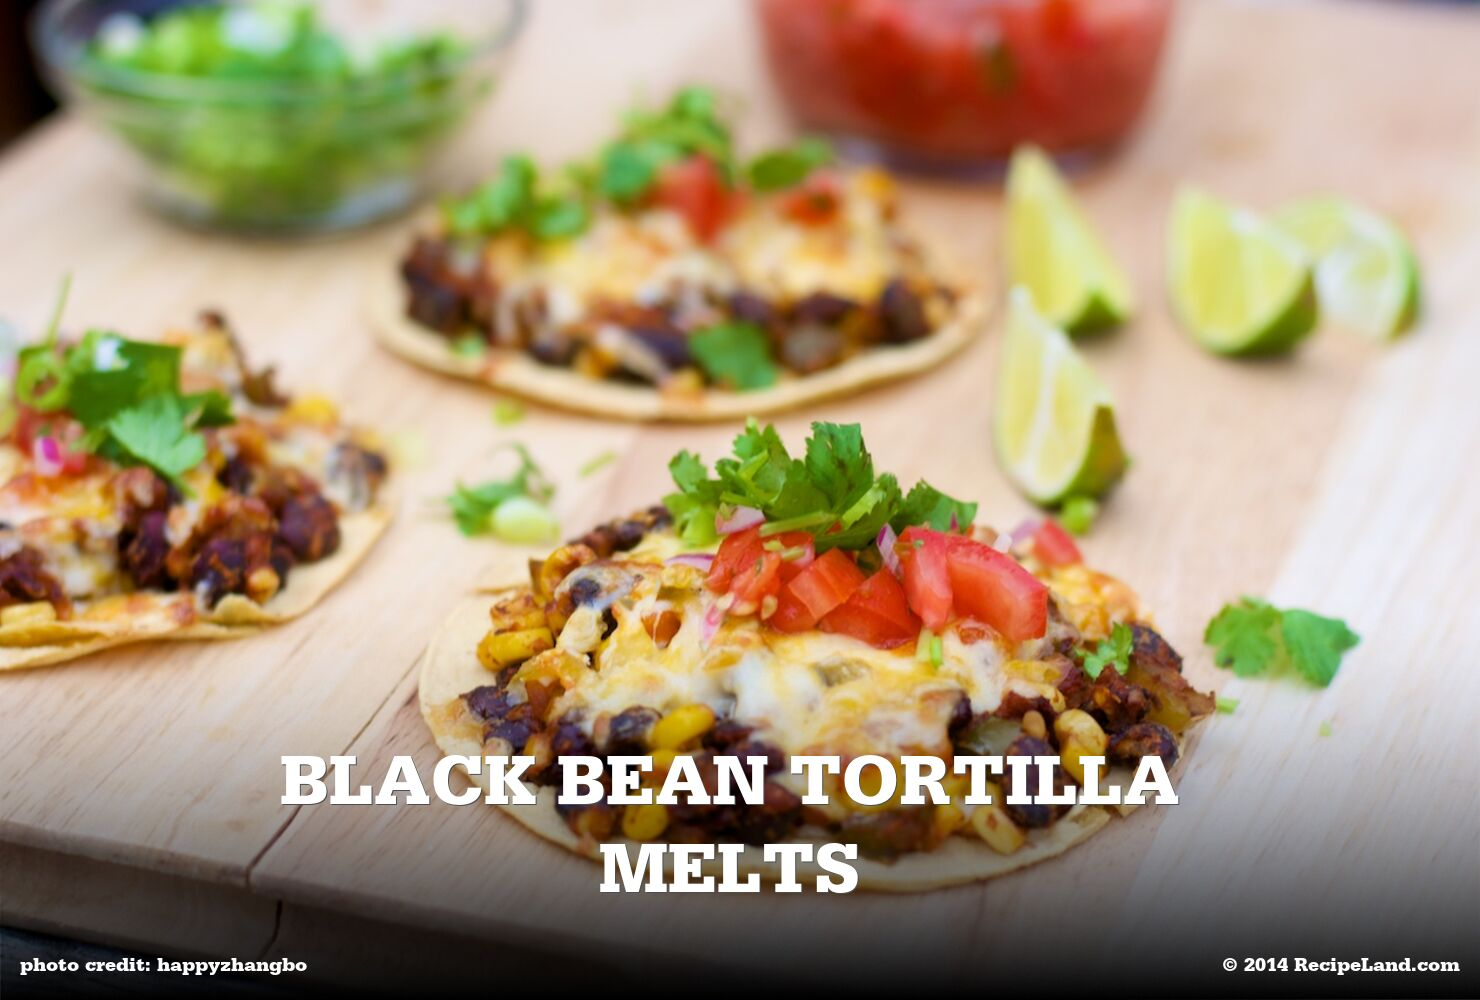 Black Bean Tortilla Melts